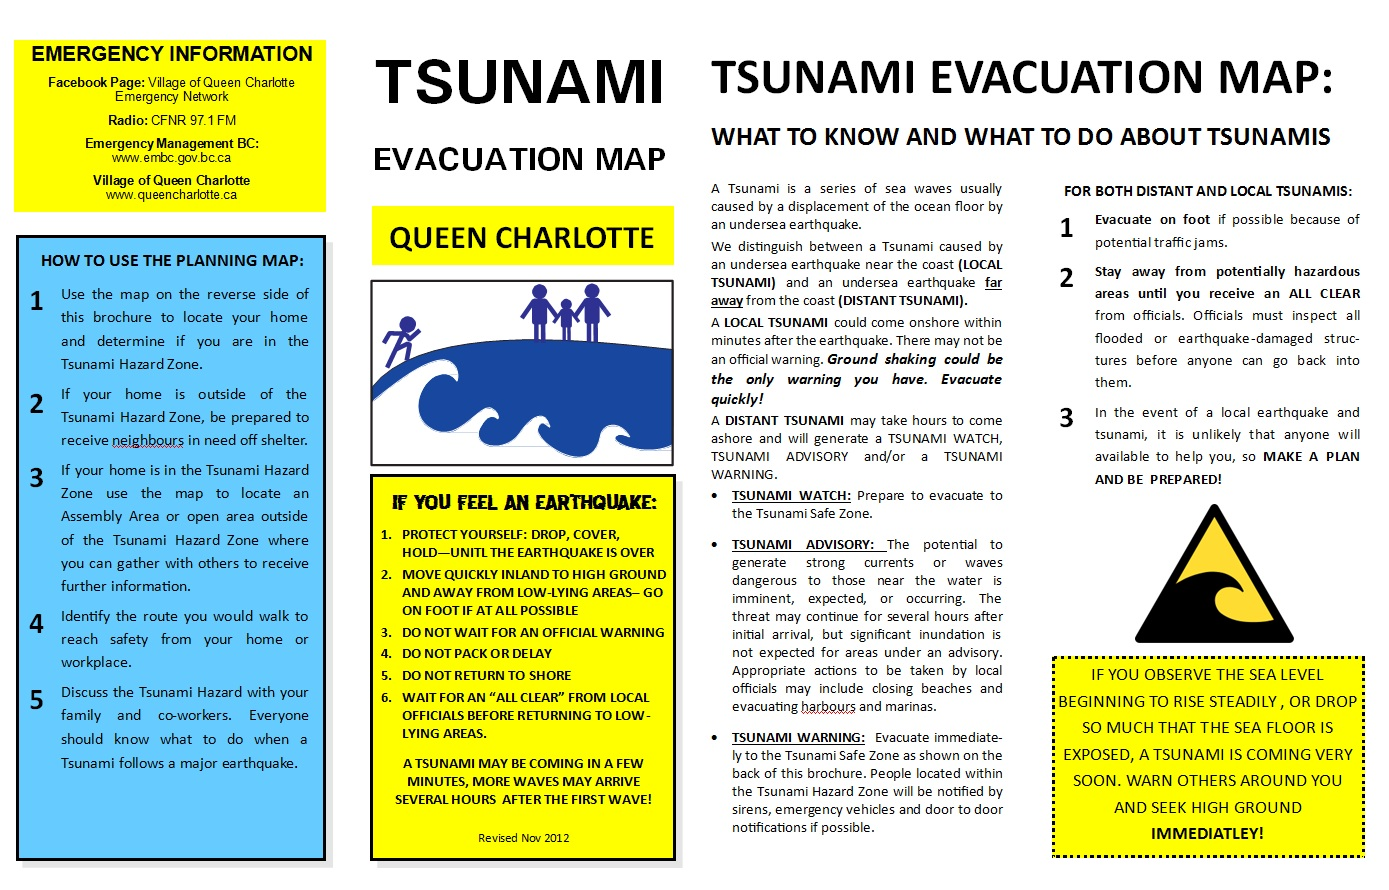 tsunamis brochure A tsunami is a series of ocean waves started by a sudden displacement of ocean water, usually by an earthquake like the waves spreading out from a dropped rock, a tsunami's waves rapidly travel in all directions away from the disturbance and can spread across entire ocean basins.